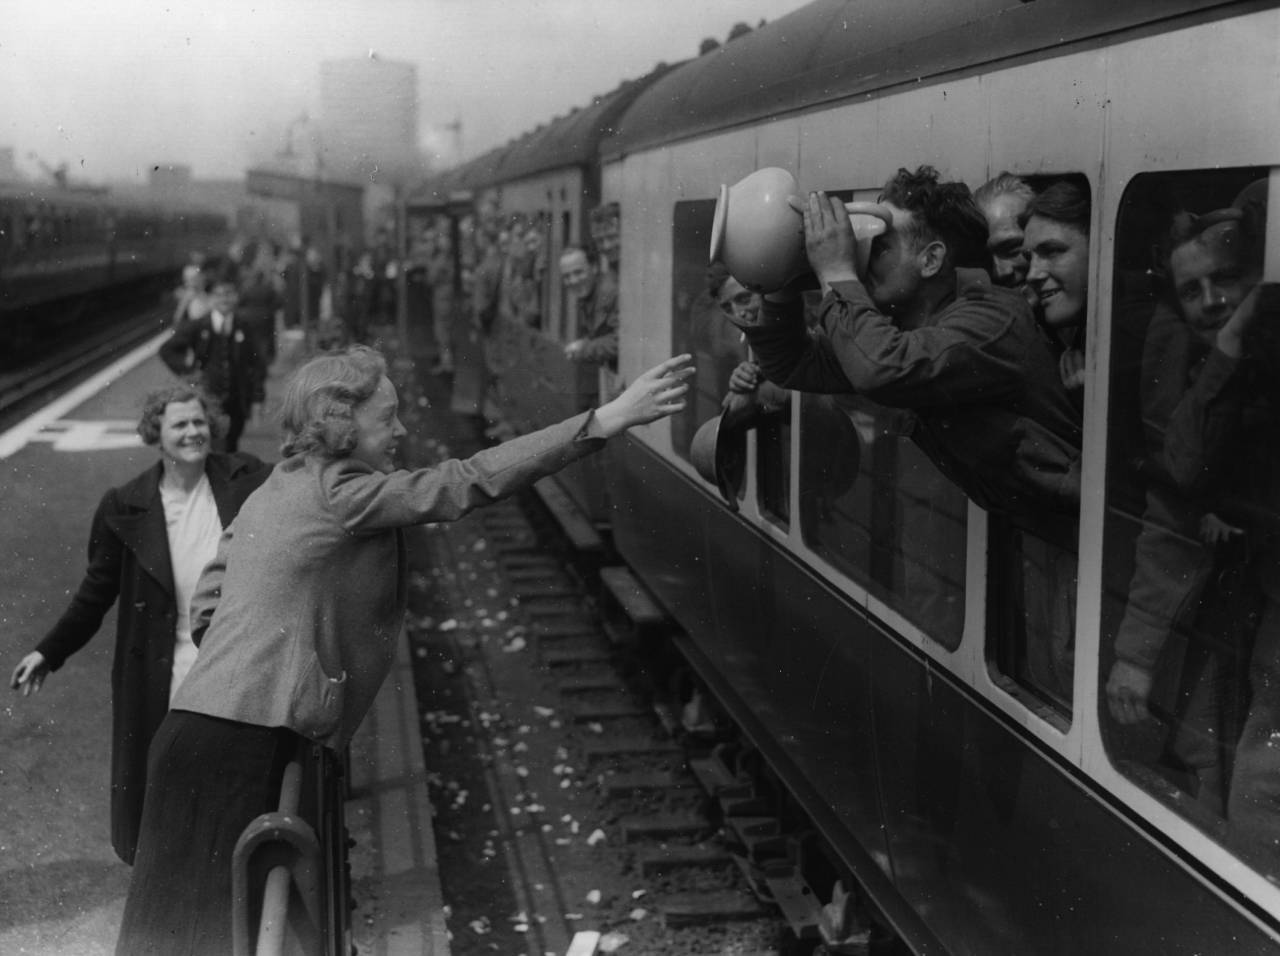 1st May 1940: A long drink for a member of the BEF at the end of his journey home from Dunkirk. (Photo by Topical Press Agency/Getty Images)